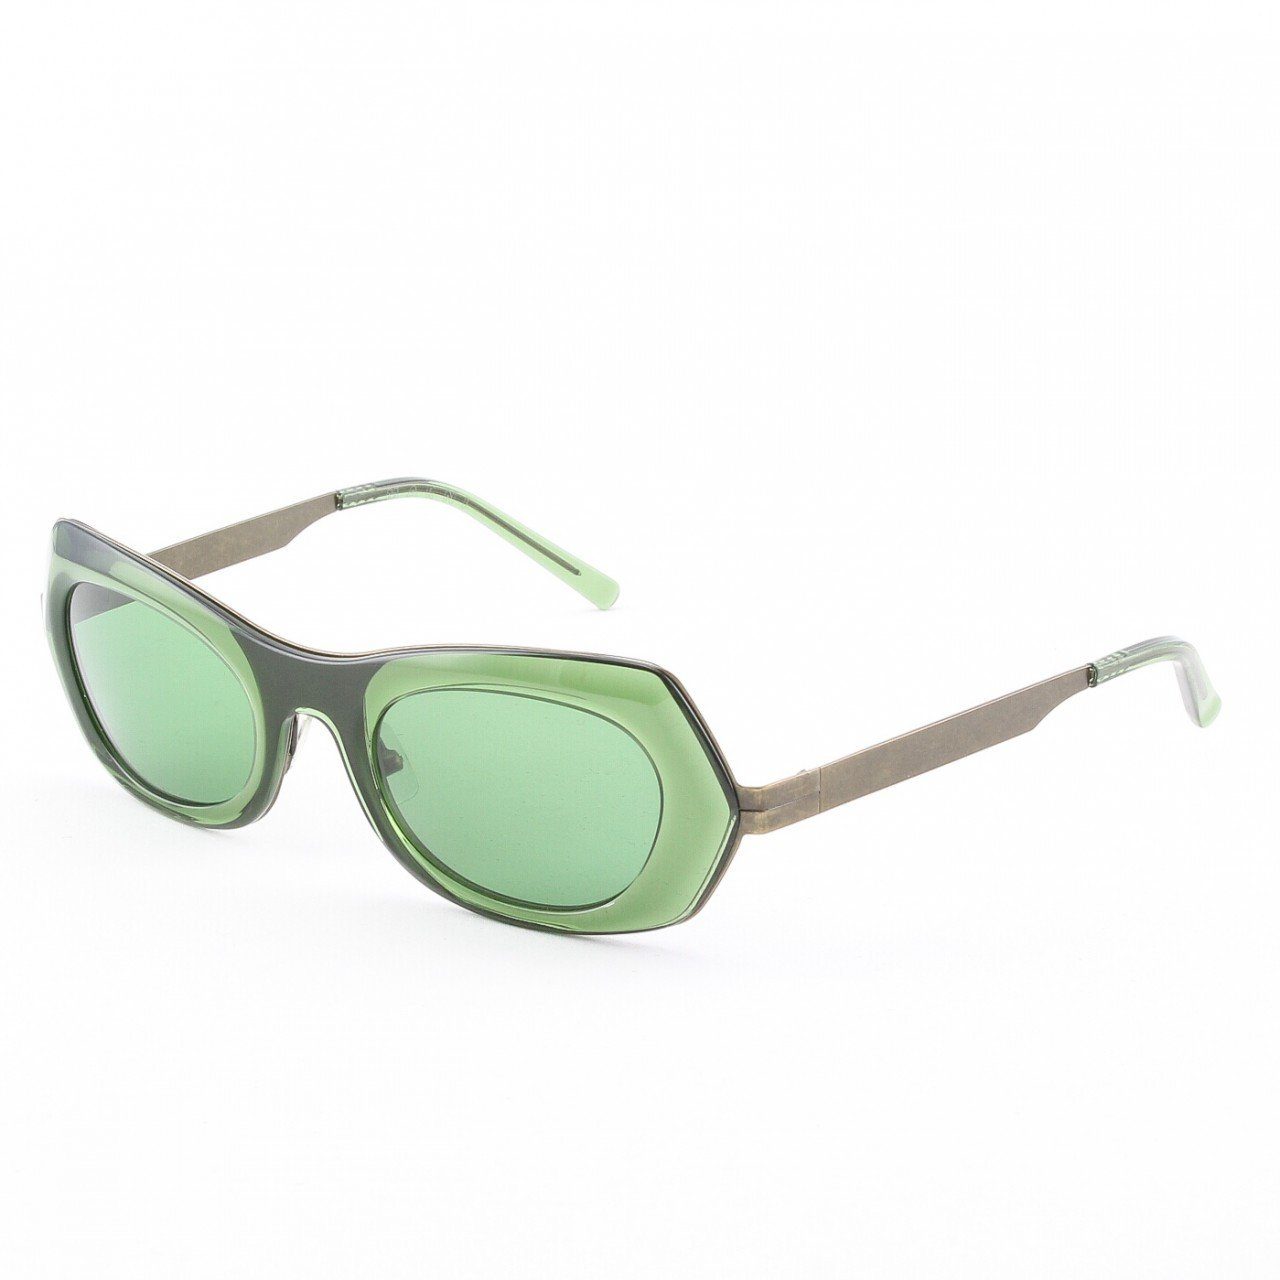 Marni MA188S Sunglasses Col. 07 Translucent Green and Antique Bronze with Green Lenses